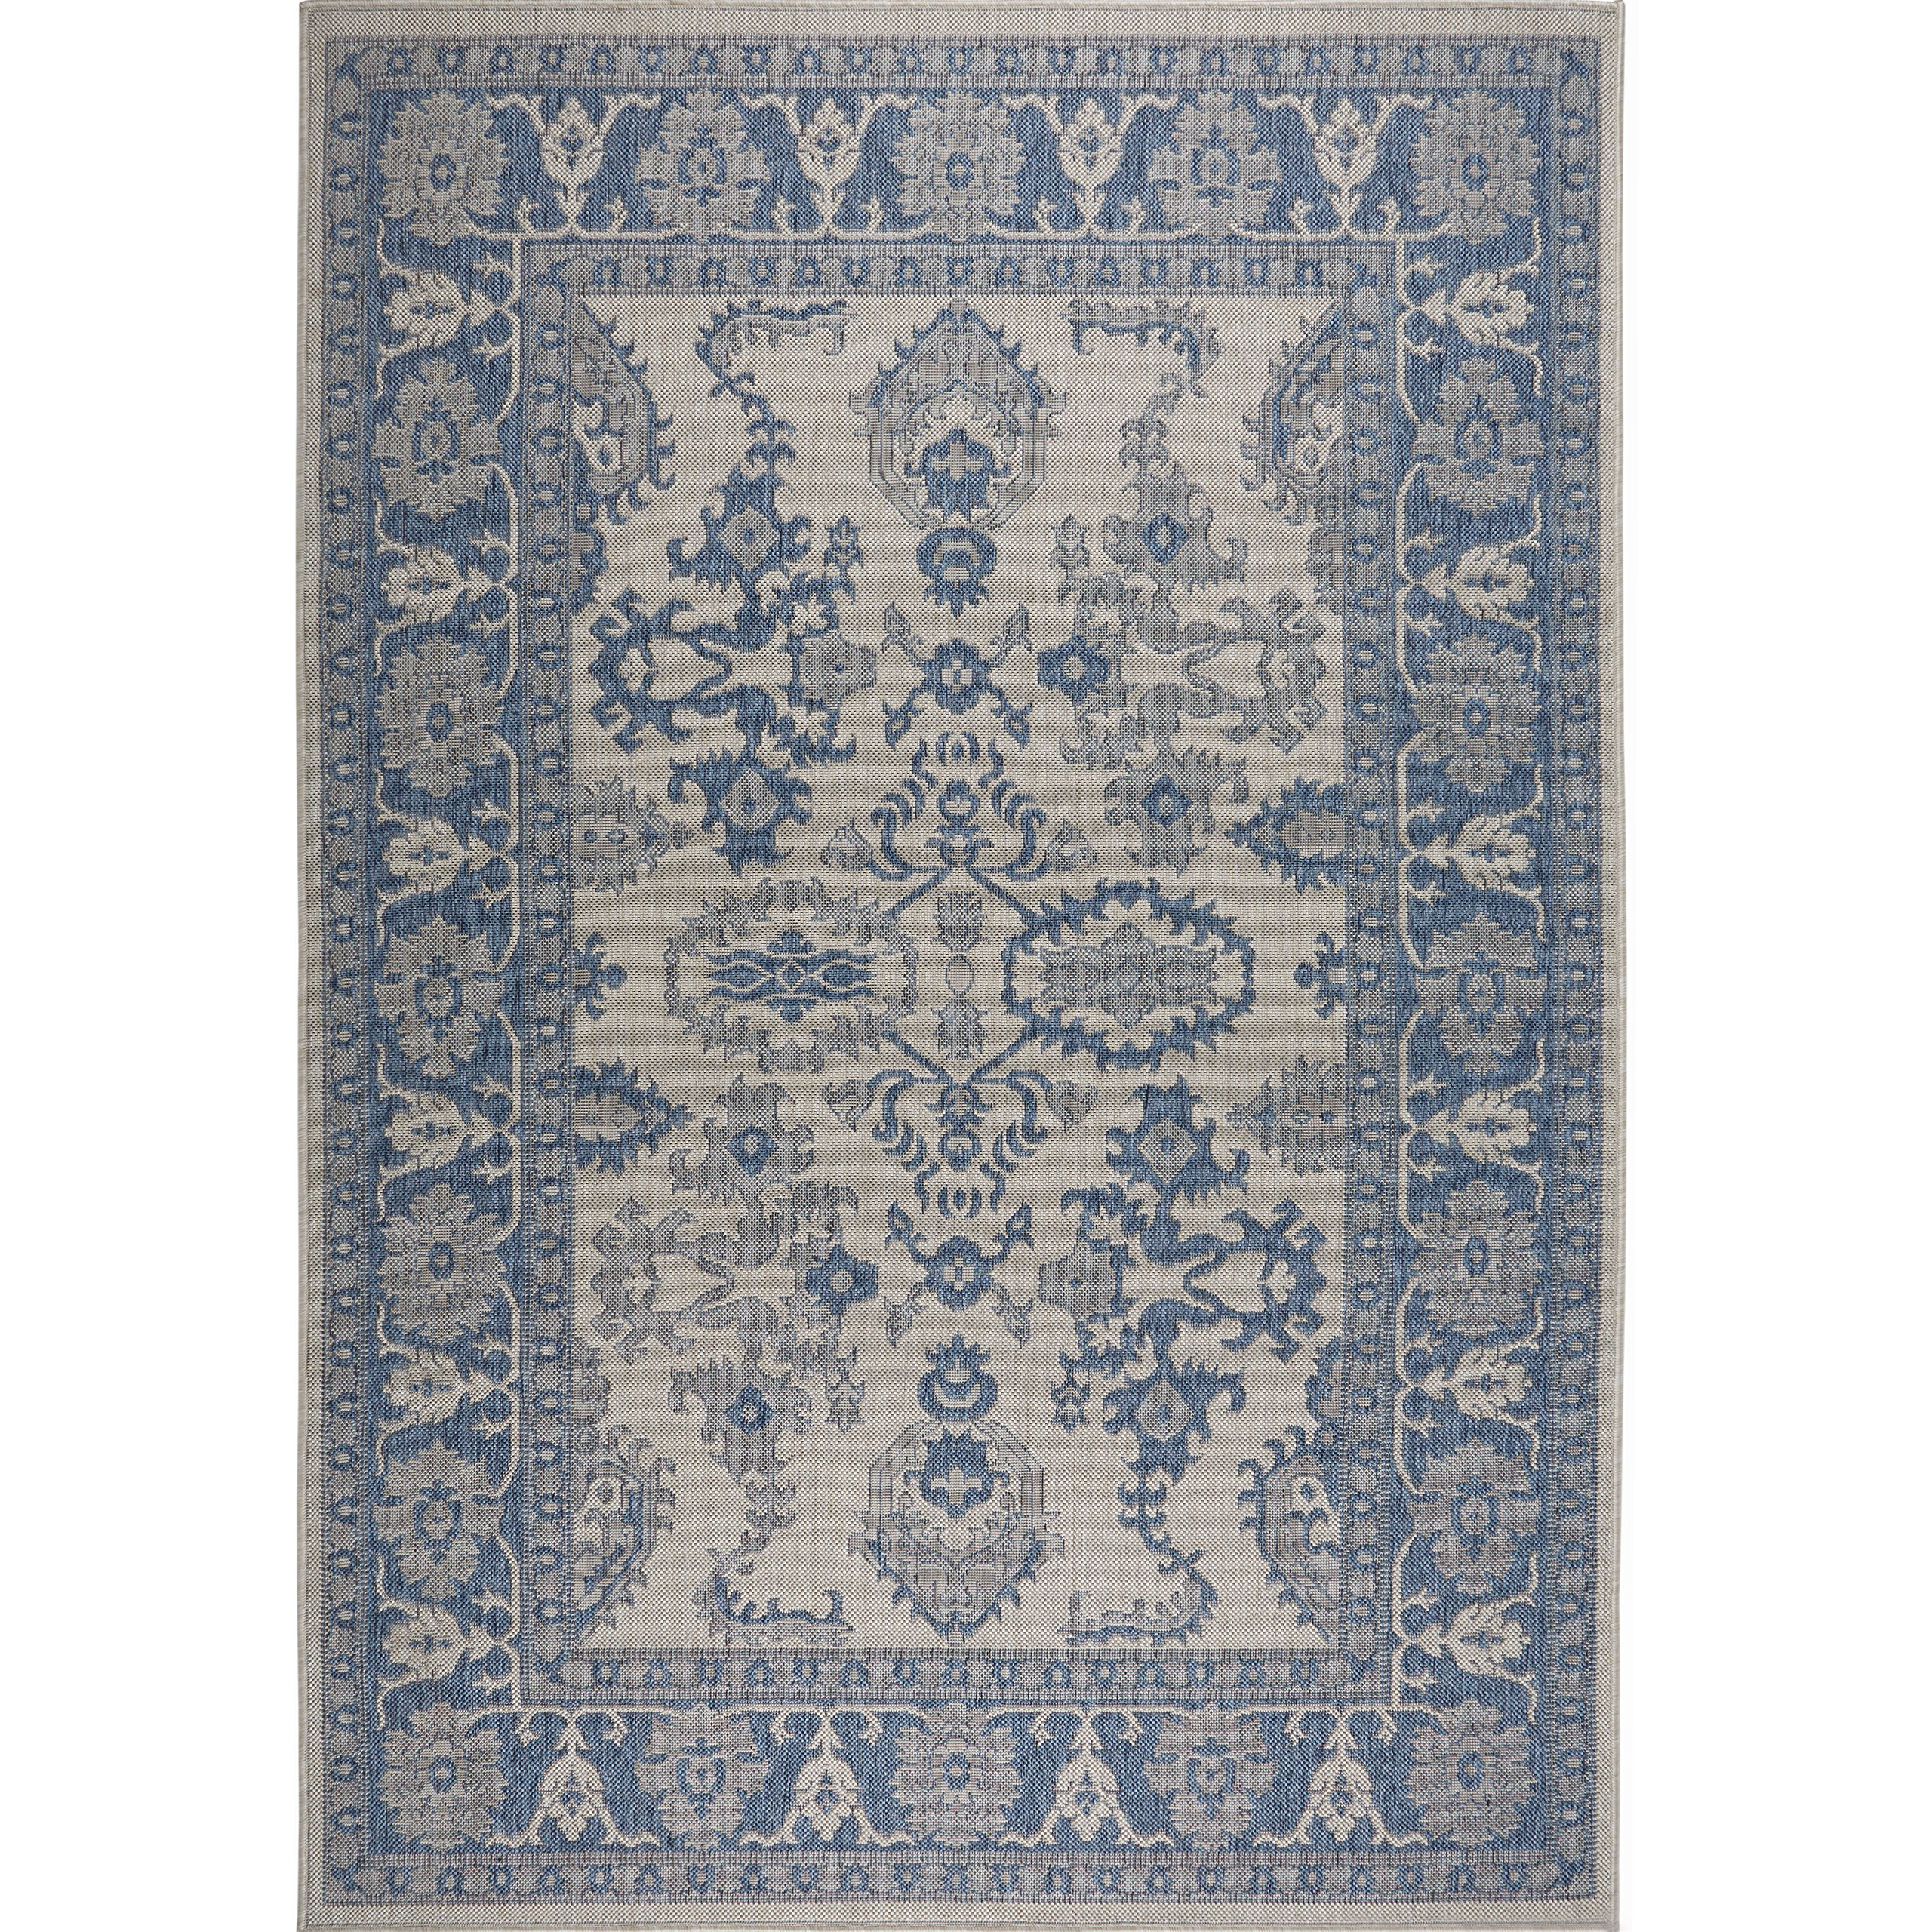 Home Dynamix Nicole Miller Patio Country Ayana Indoor/Outdoor Area Rug 7'9''x10'2'', Traditional Gray/Blue by Home Dynamix (Image #2)